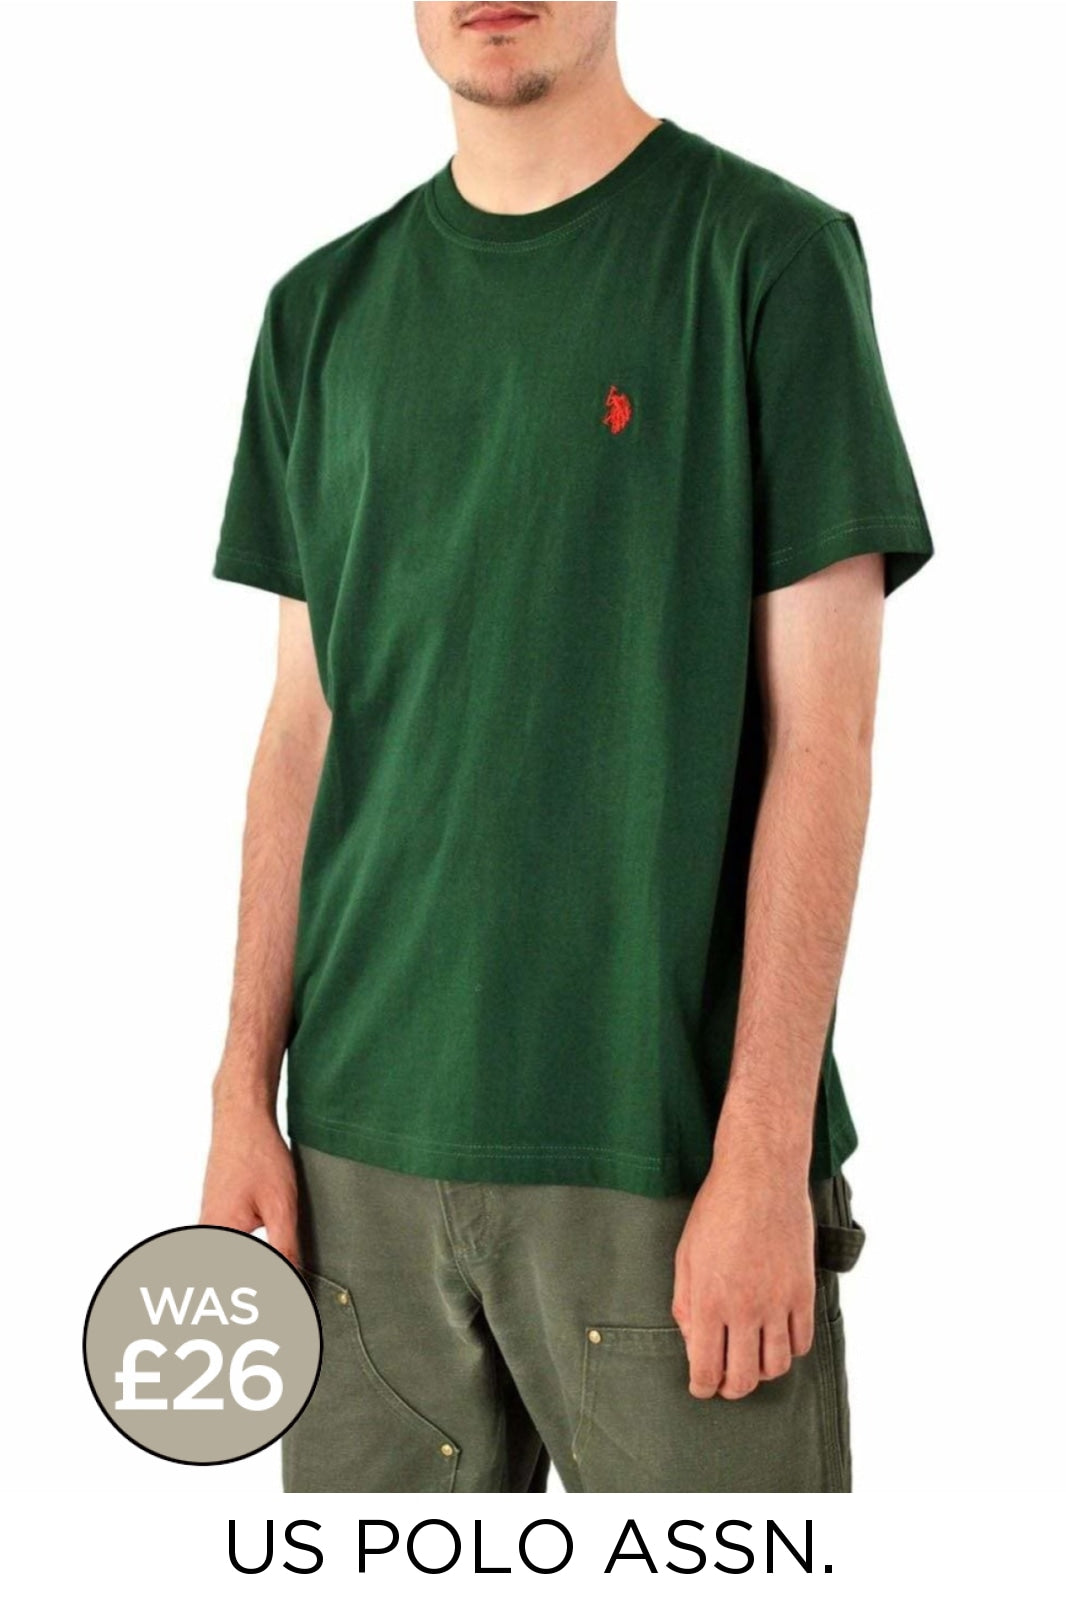 US Polo Assn. US Polo Assn. Cotton Crew Neck T-Shirt | Large / Forest Green Secret Label